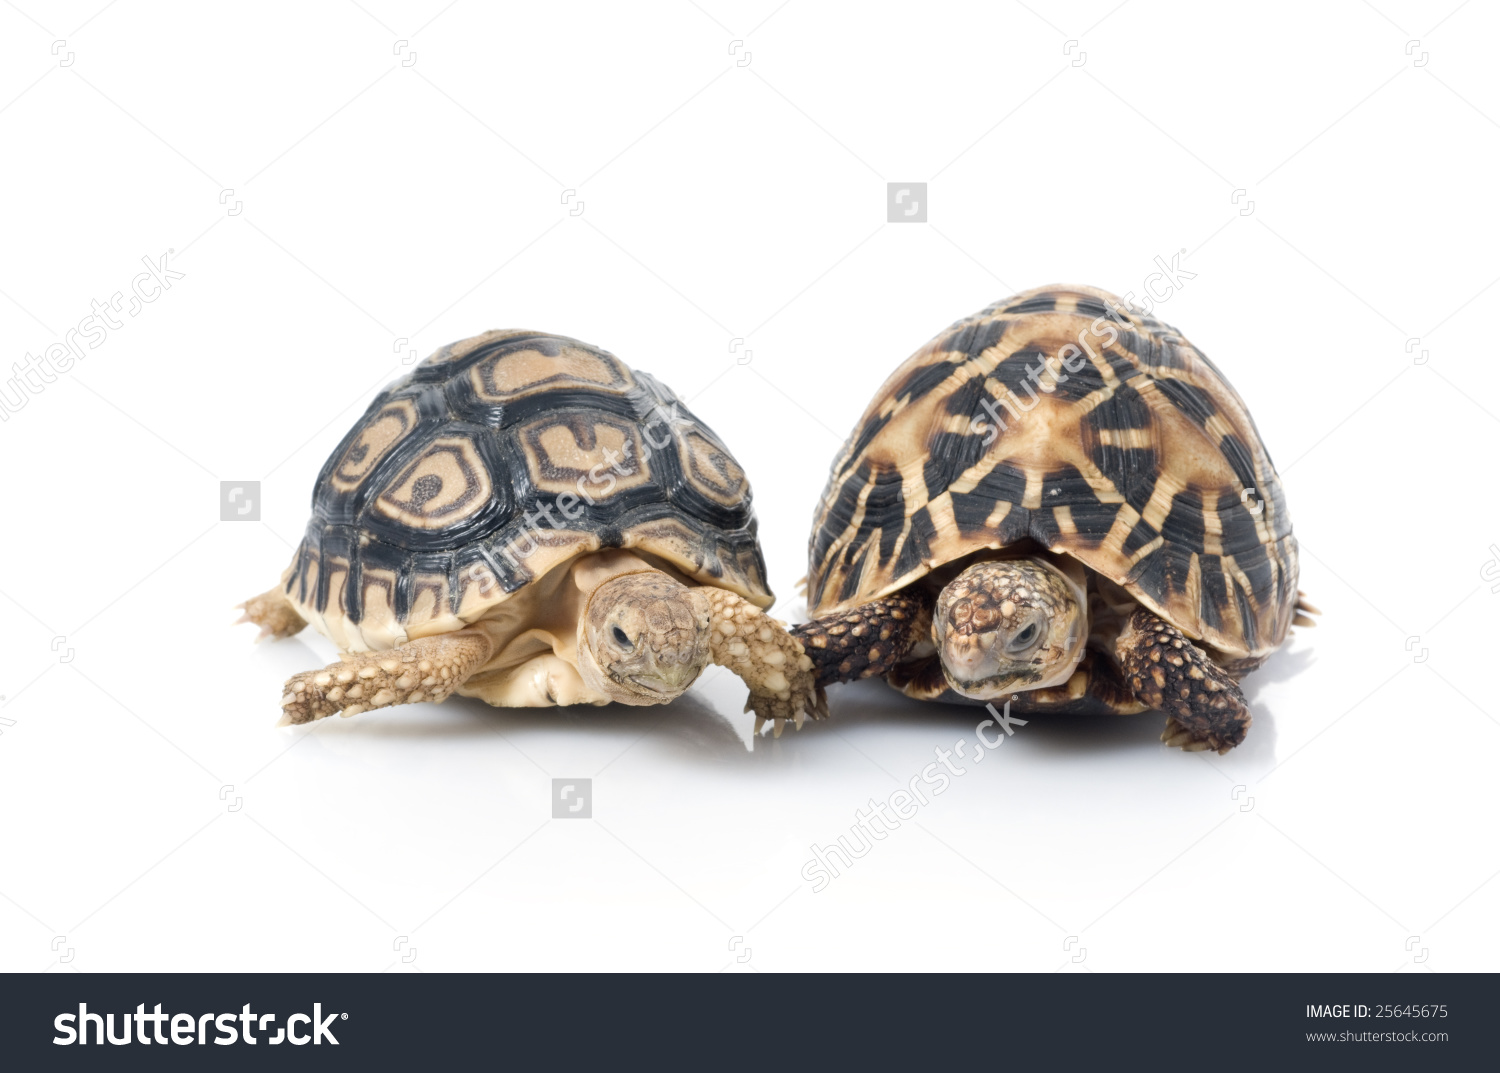 Leopard Tortoise clipart #12, Download drawings